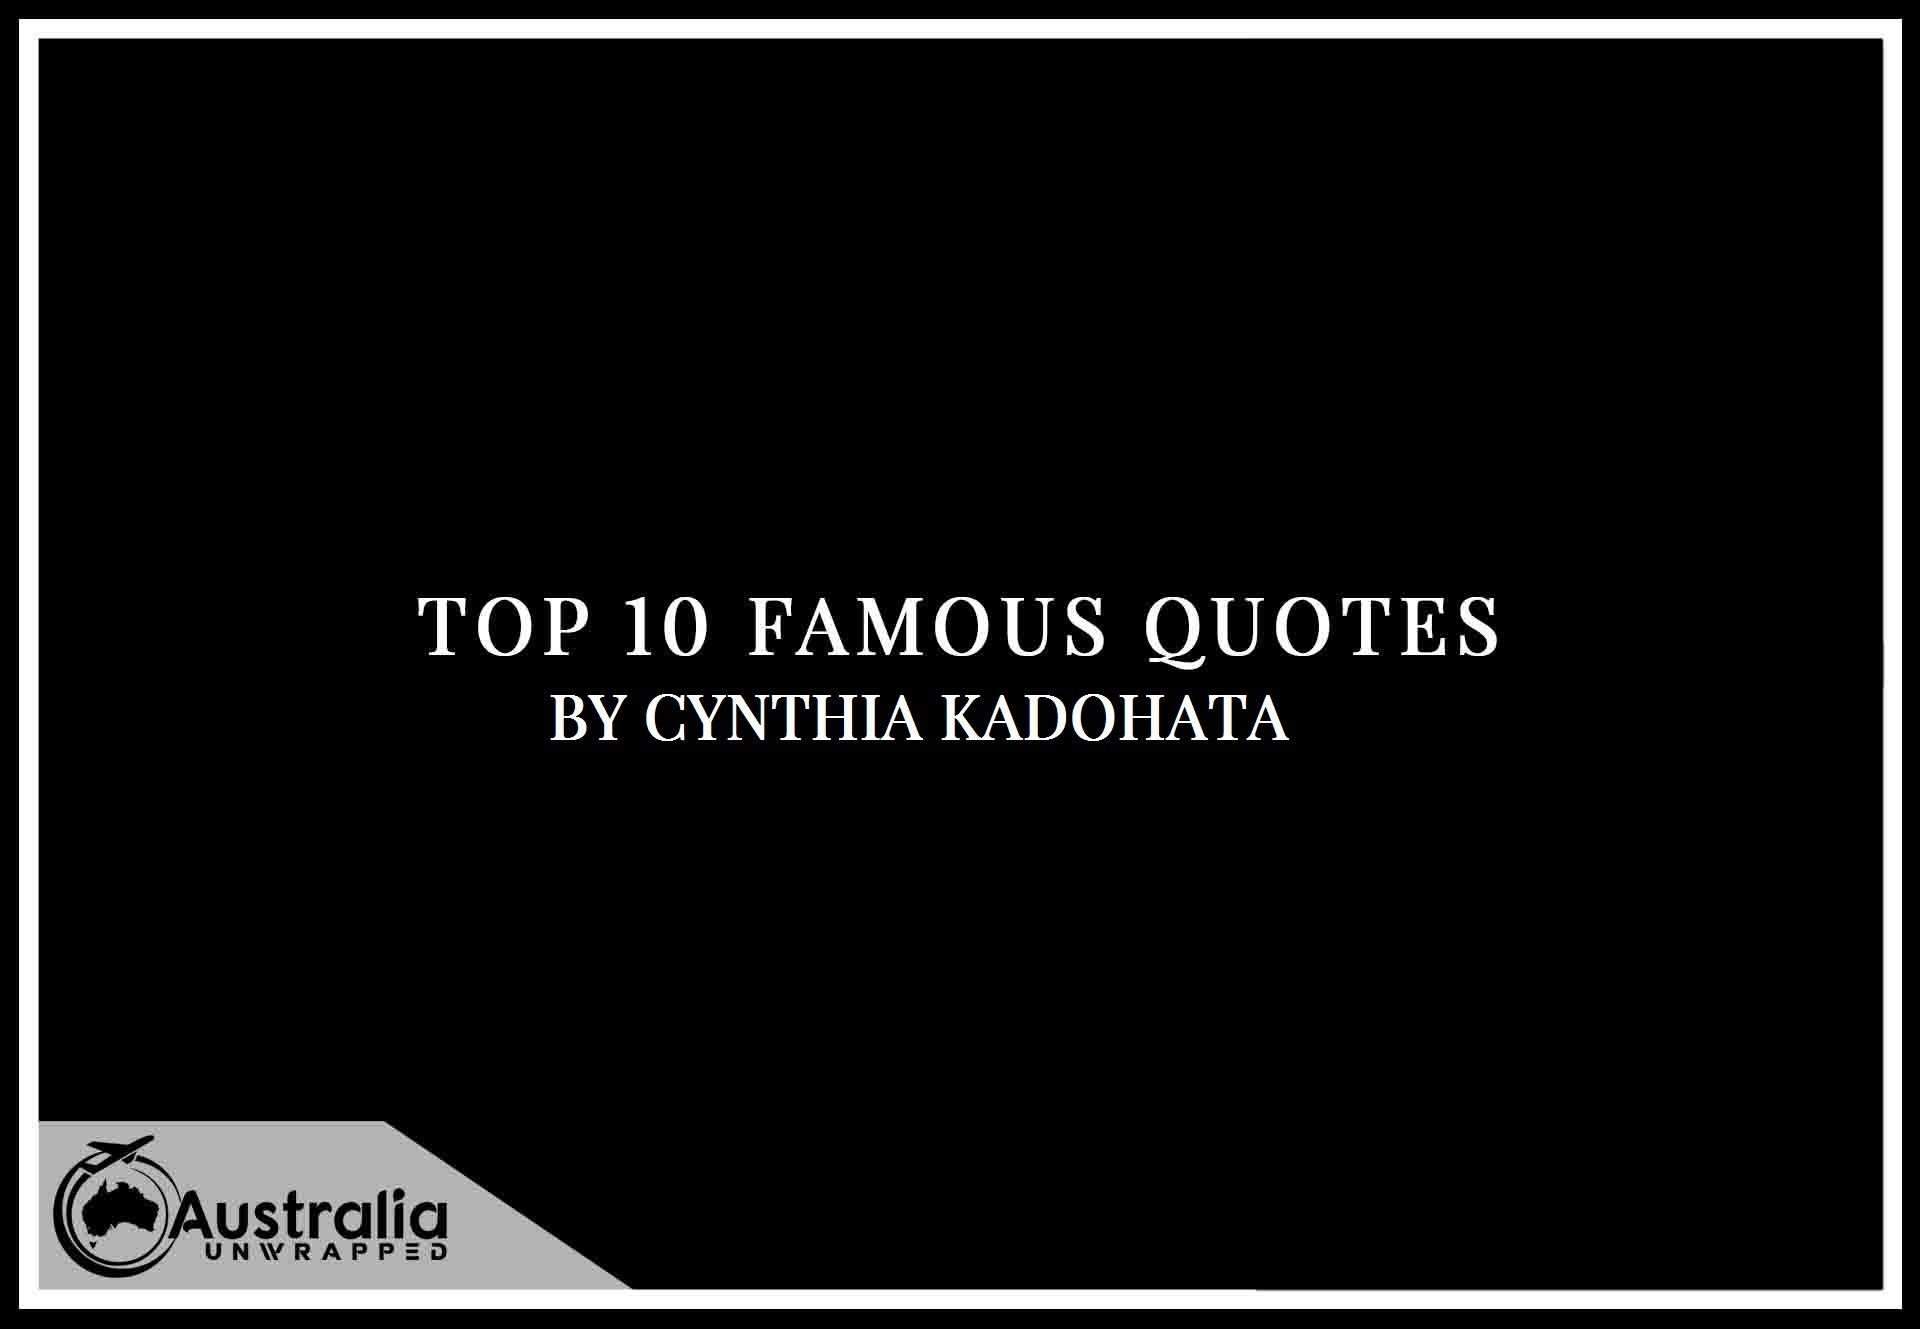 Cynthia Kadohata's Top 10 Popular and Famous Quotes